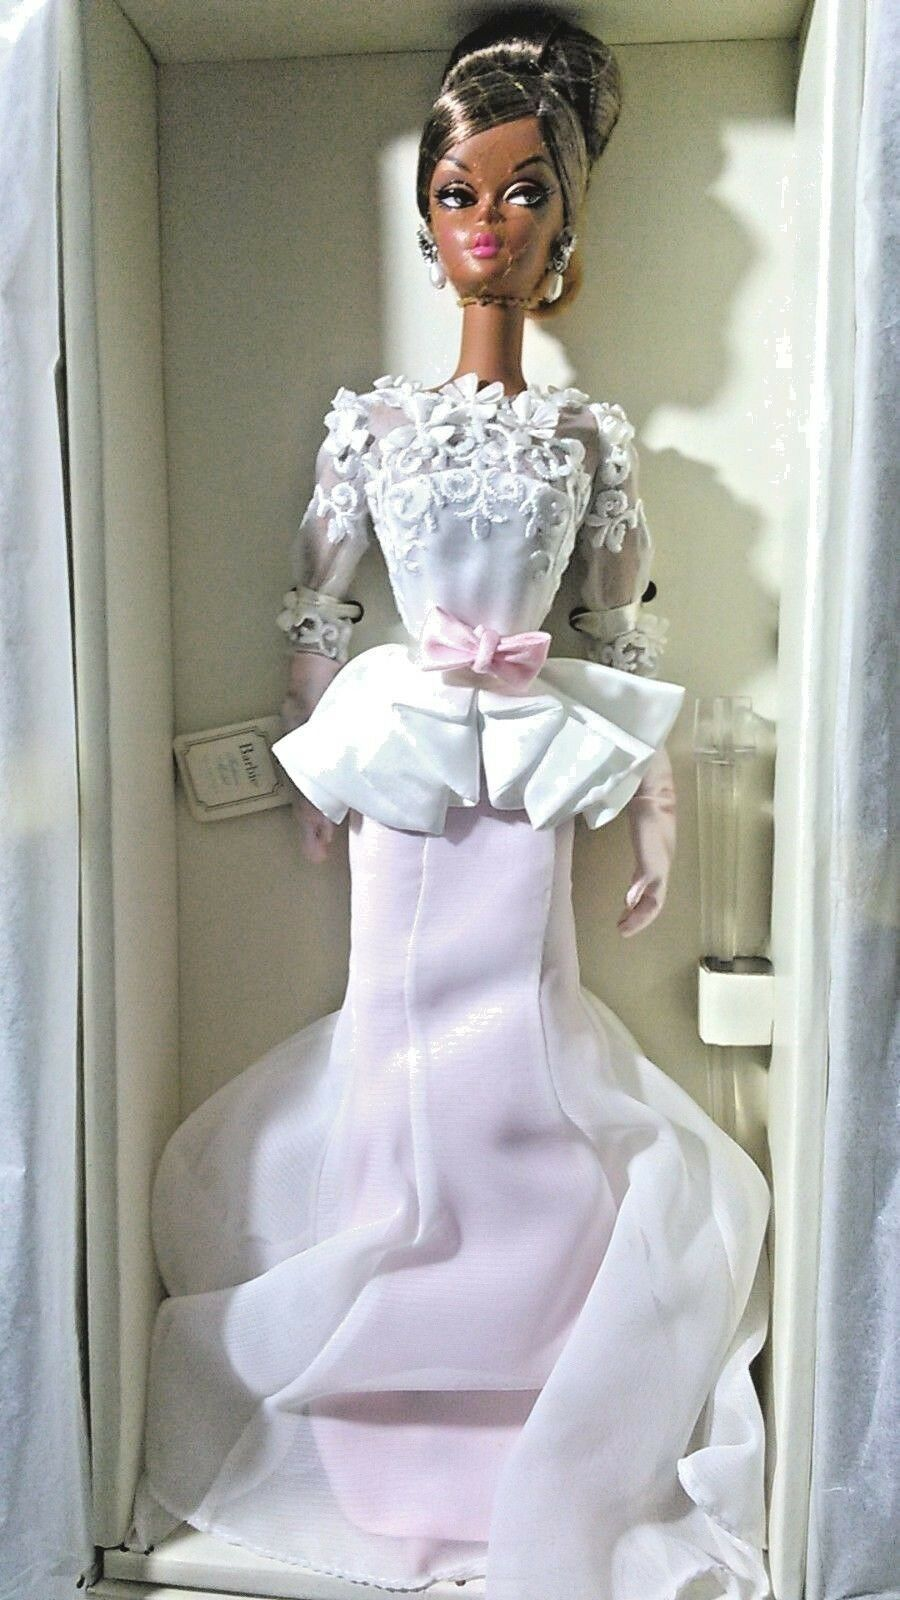 BARBIE EVENING EVENING EVENING GOWN SILKSTONE NRFB - Gold LABEL new model doll collection Mattel 4dc826